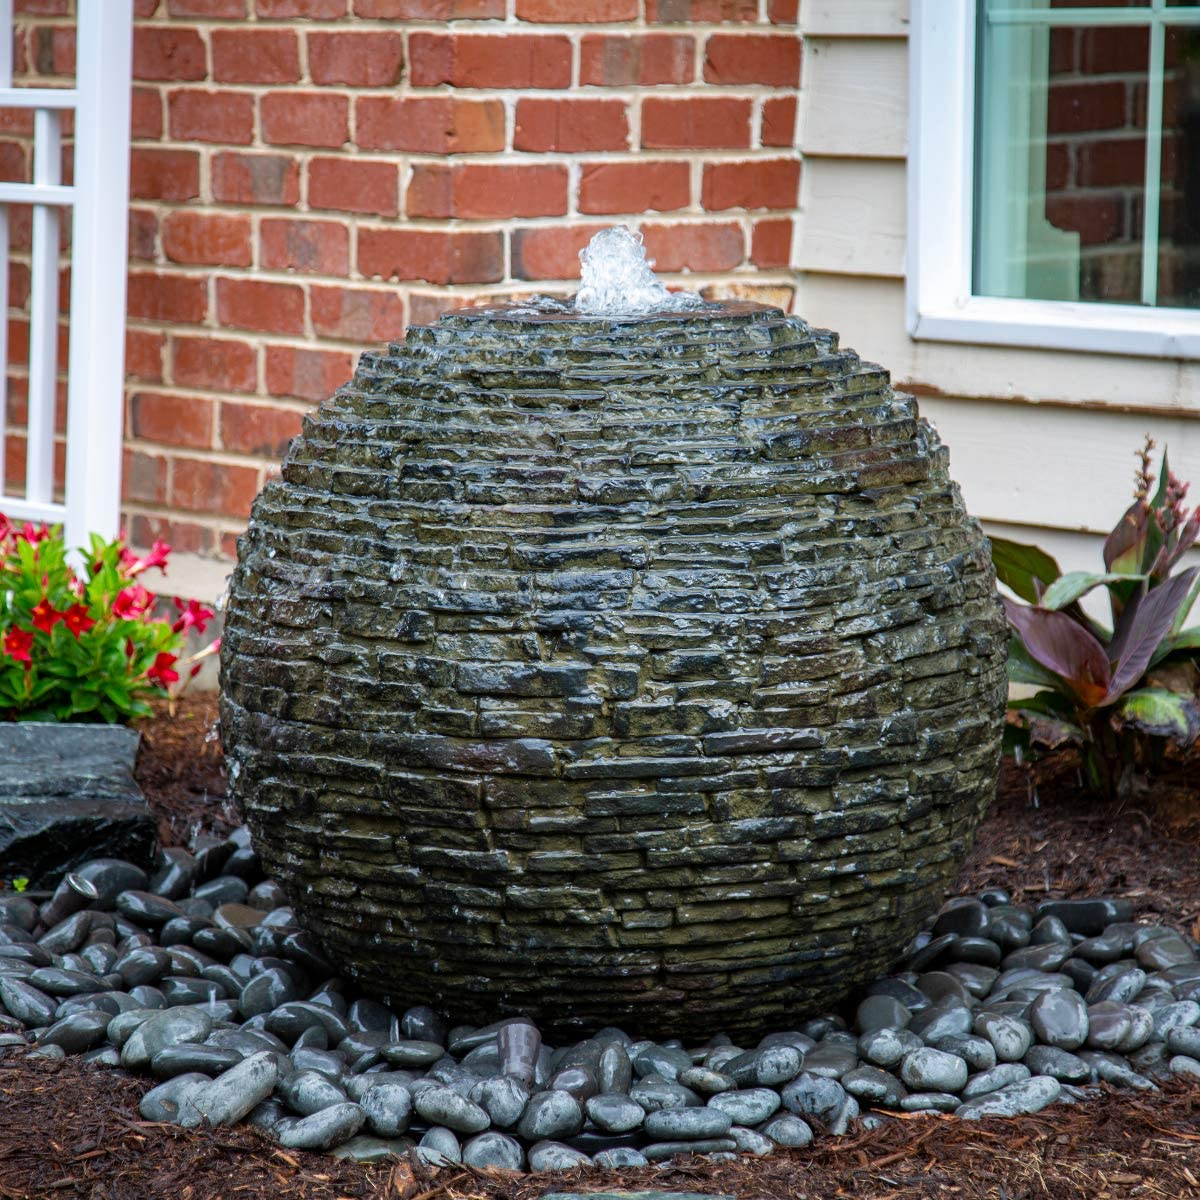 Amazon.com : Aquascape Stacked Slate Sphere Water Fountain for ...